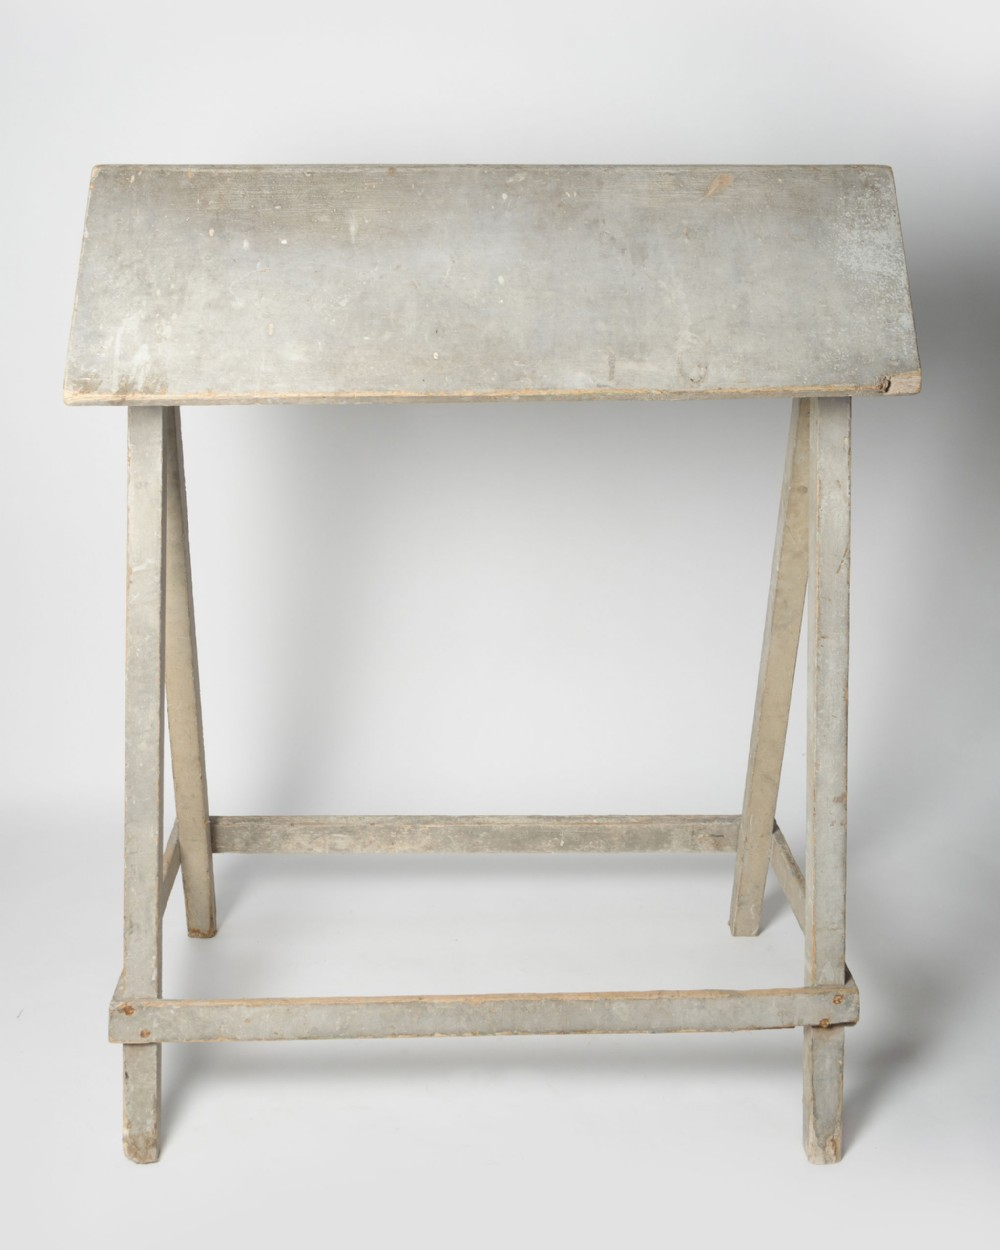 antique french saddle stand